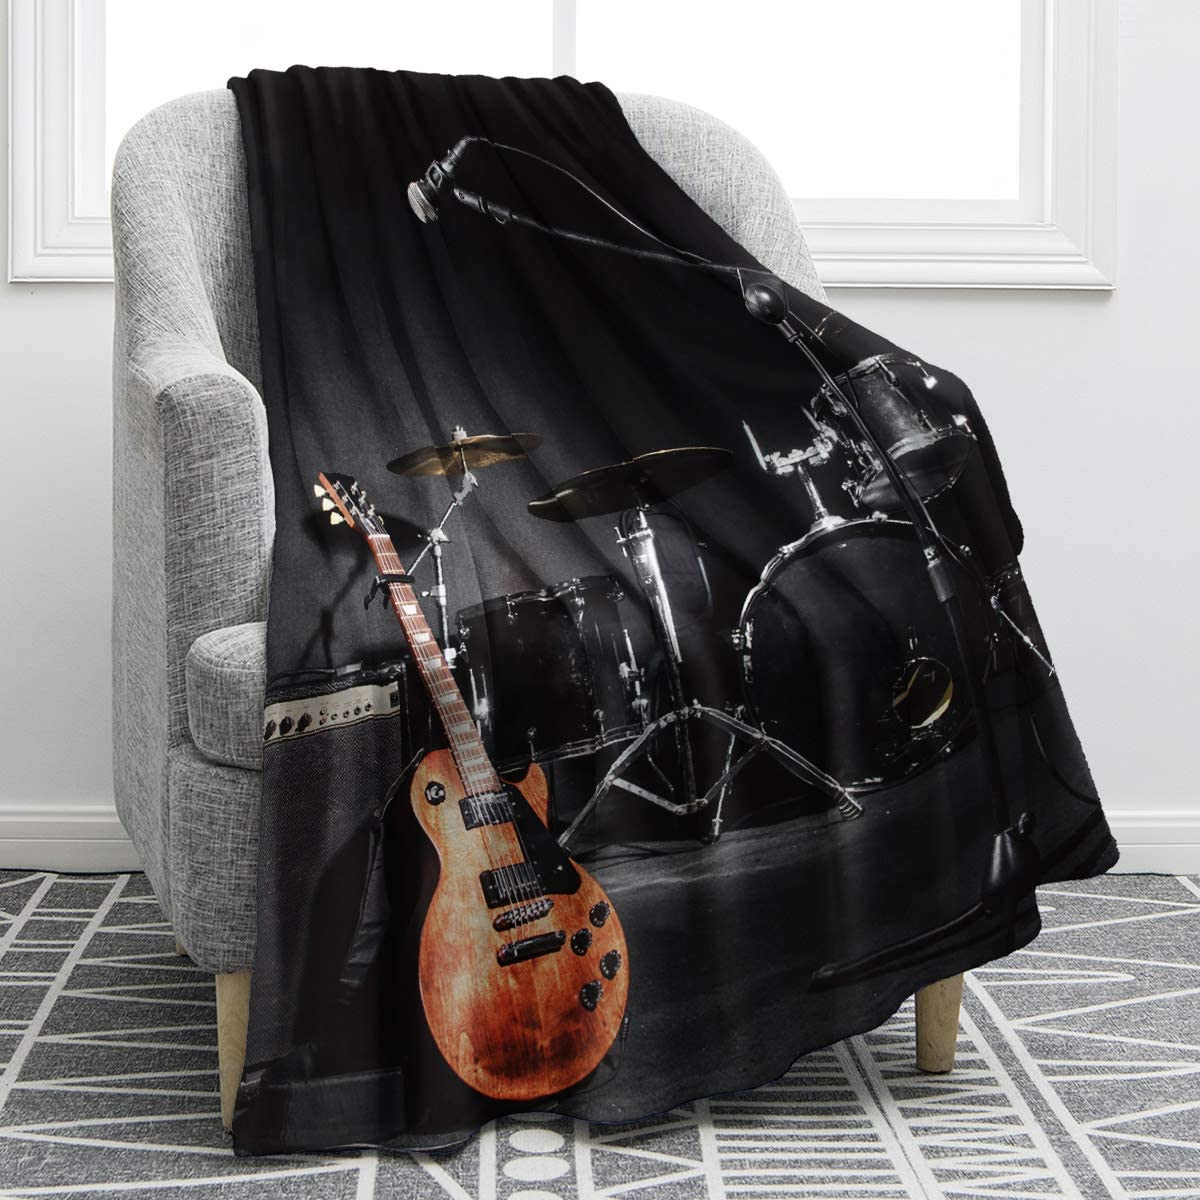 Jekeno Musical Instruments Guitar Blanket Soft Warm Print Throw Black Blanket for Music Enthusiast Adults Gift Sofa Chair Bed 50